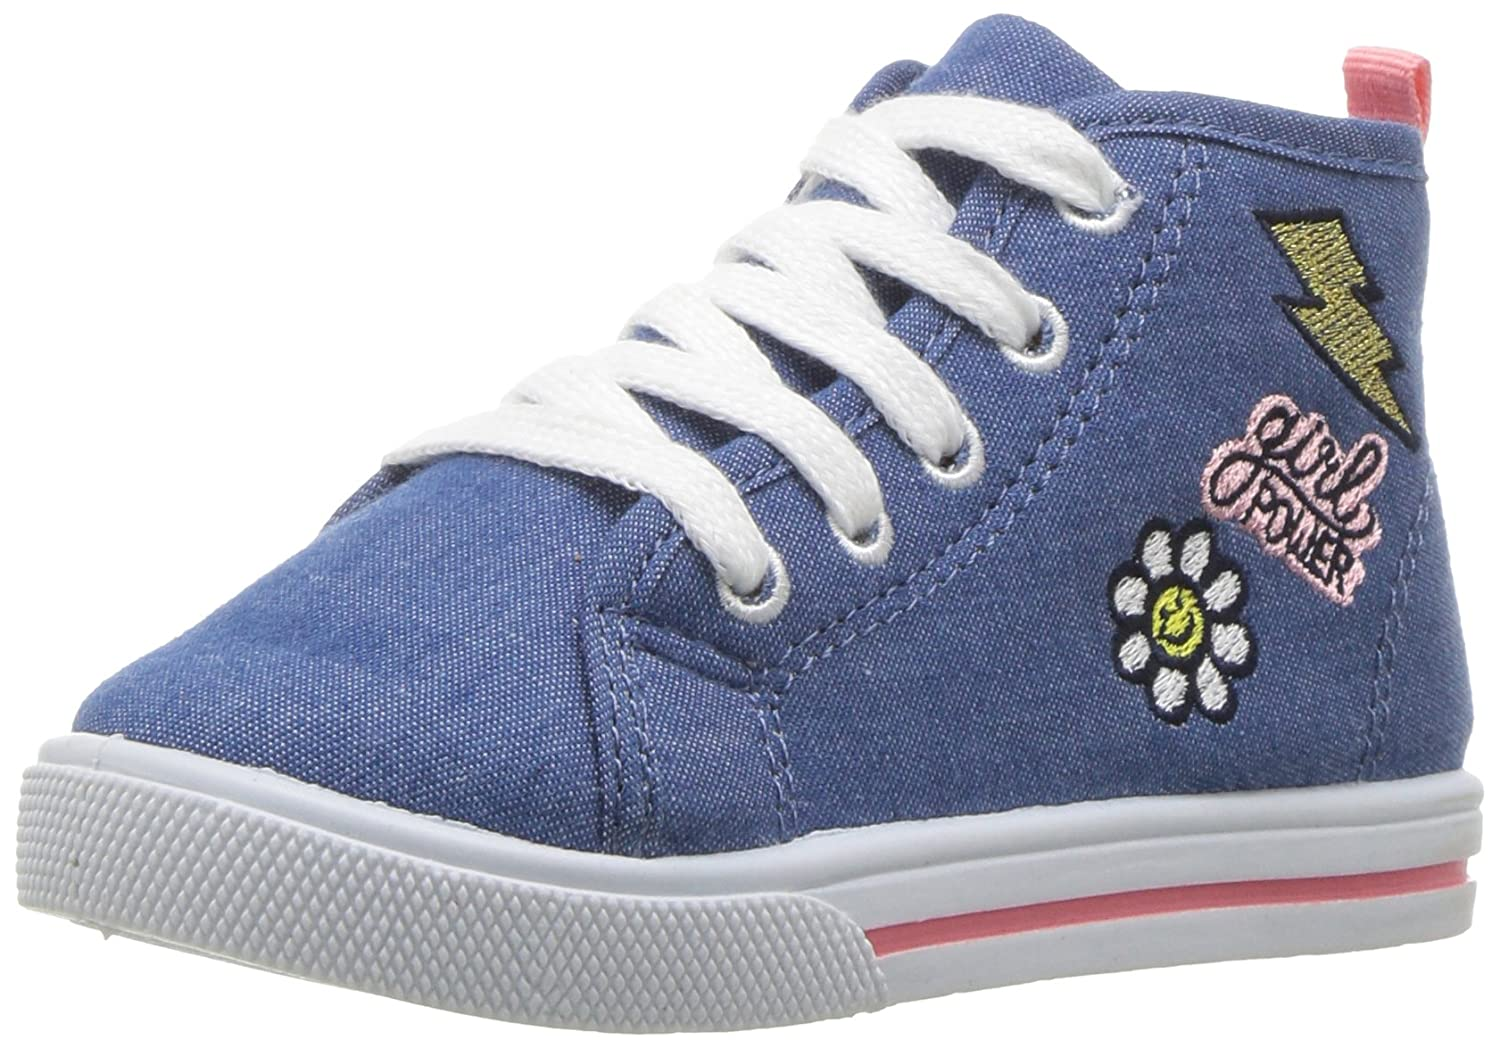 Carter's Kids Girls' Ginger3 Novelty High-top Casual Mary Jane Flat Carter' s GINGER3 - K